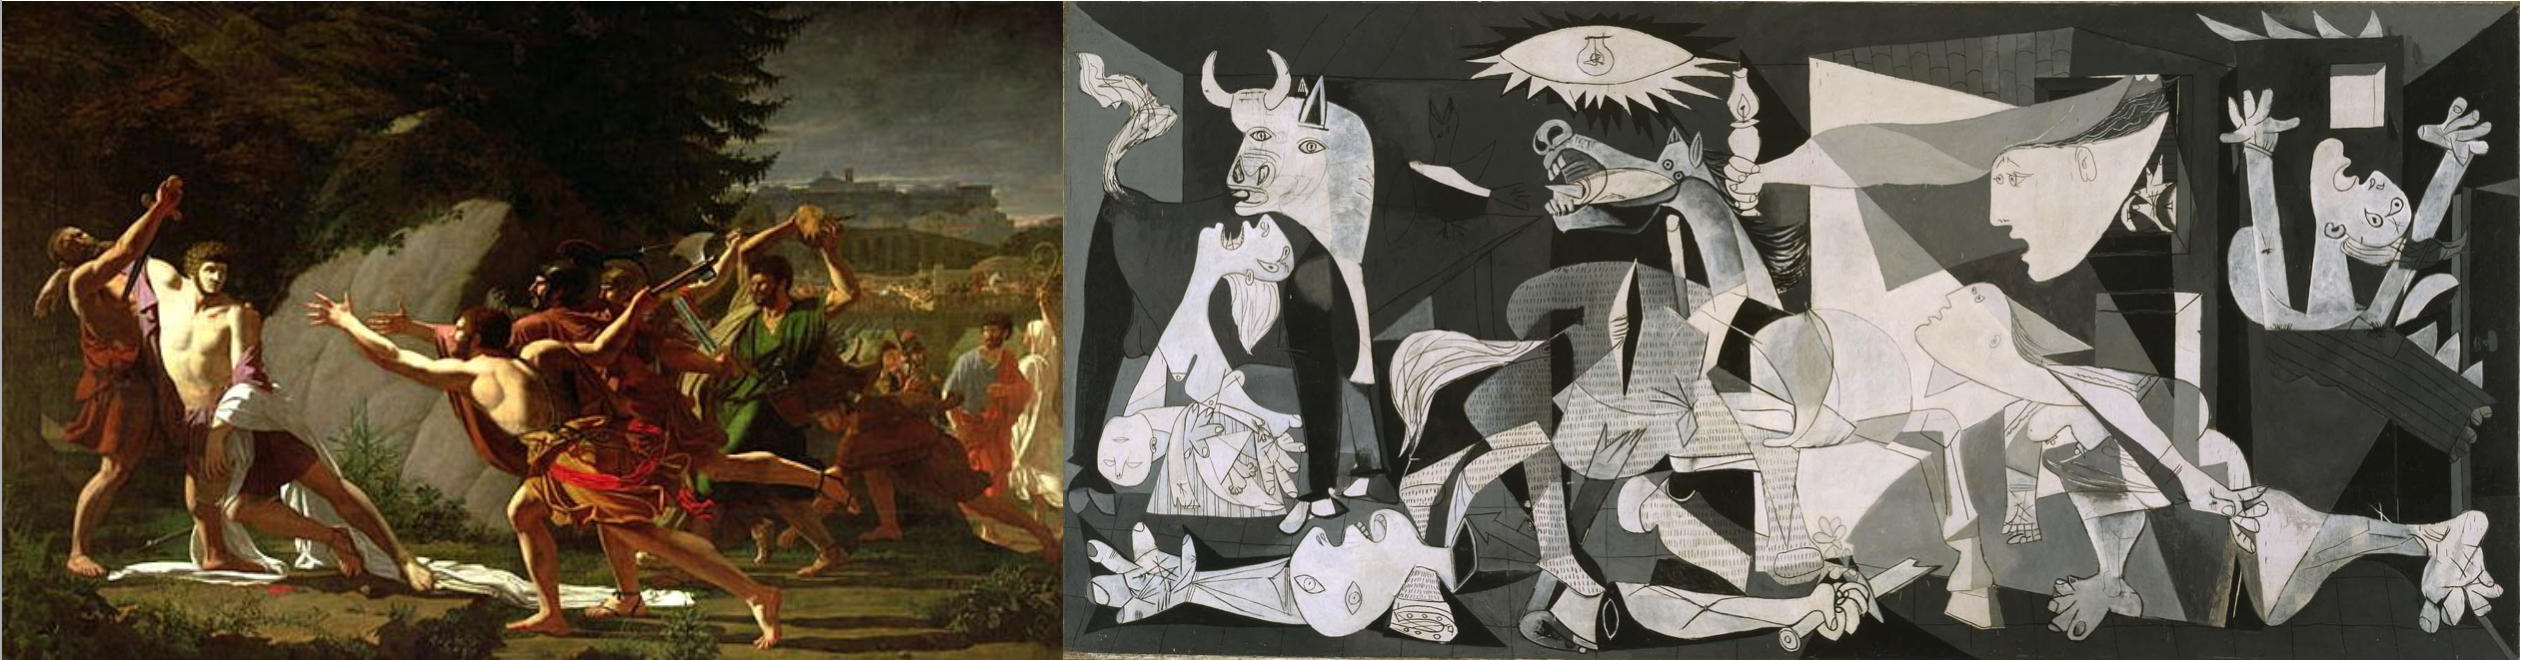 On the left, a painting of the Death of Gaius Gracchus. On the right, the painting Guernica by Picasso.